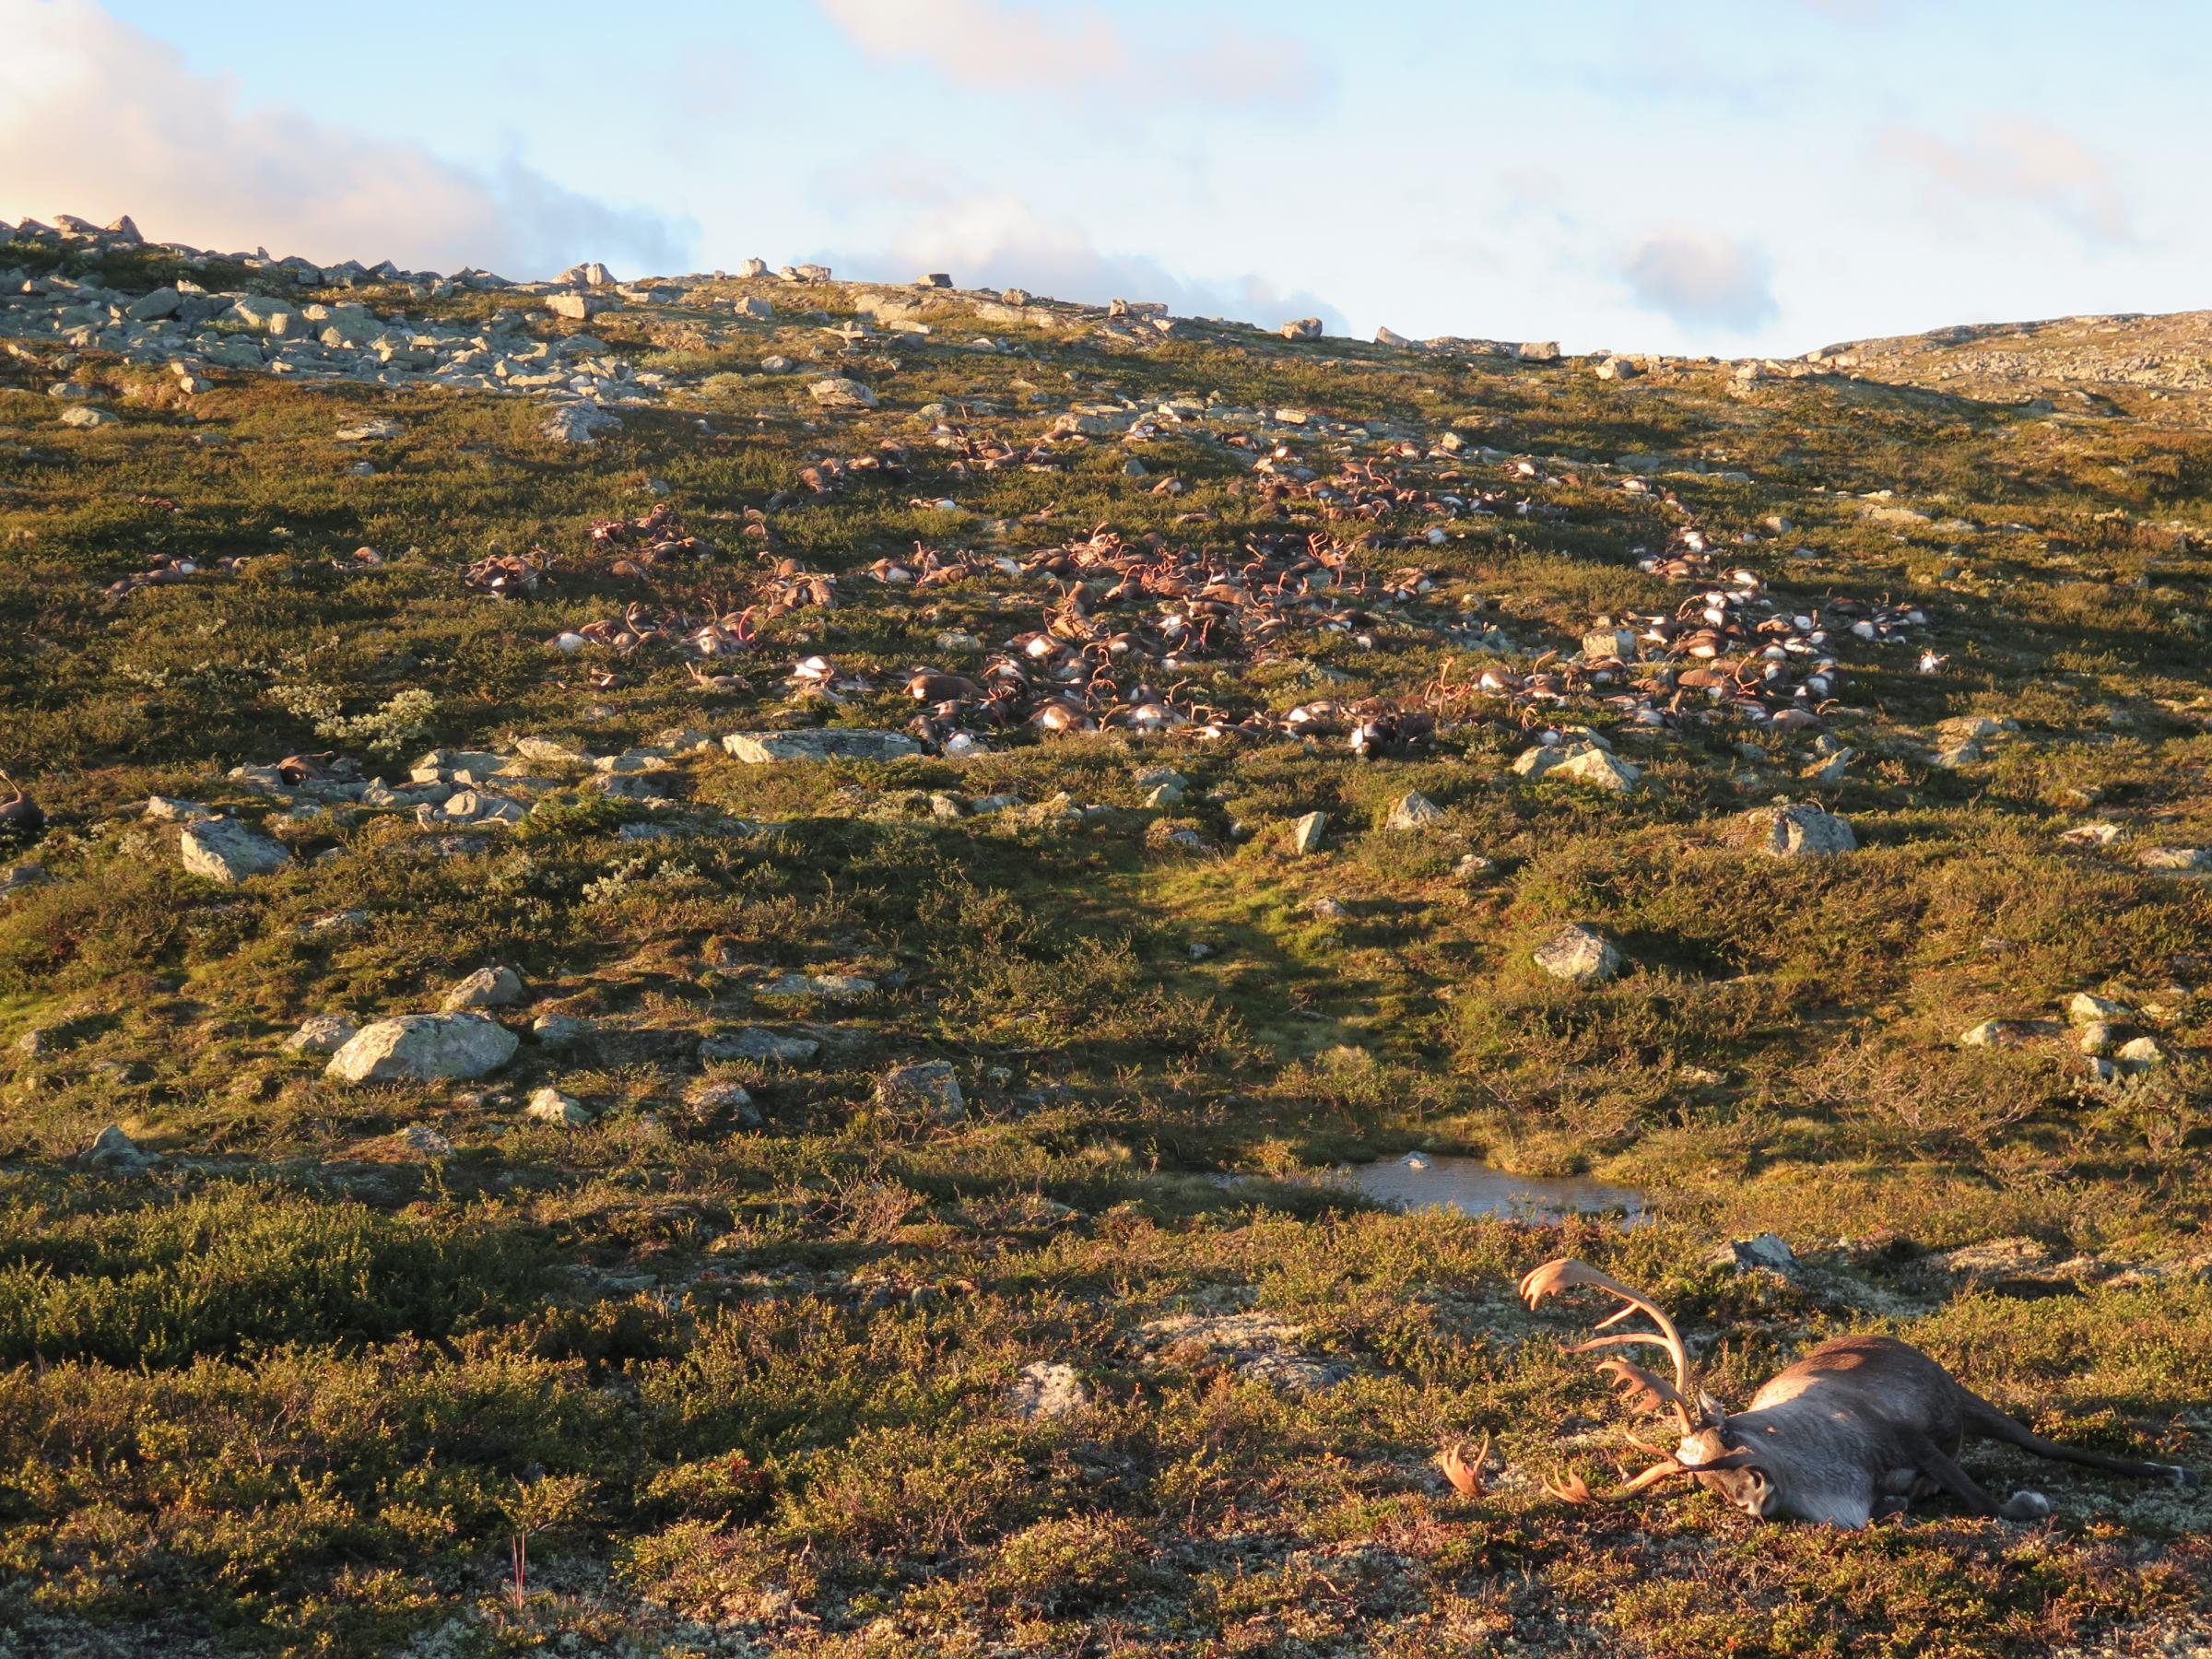 Over 300 reindeer killed by lightning strike in Norway